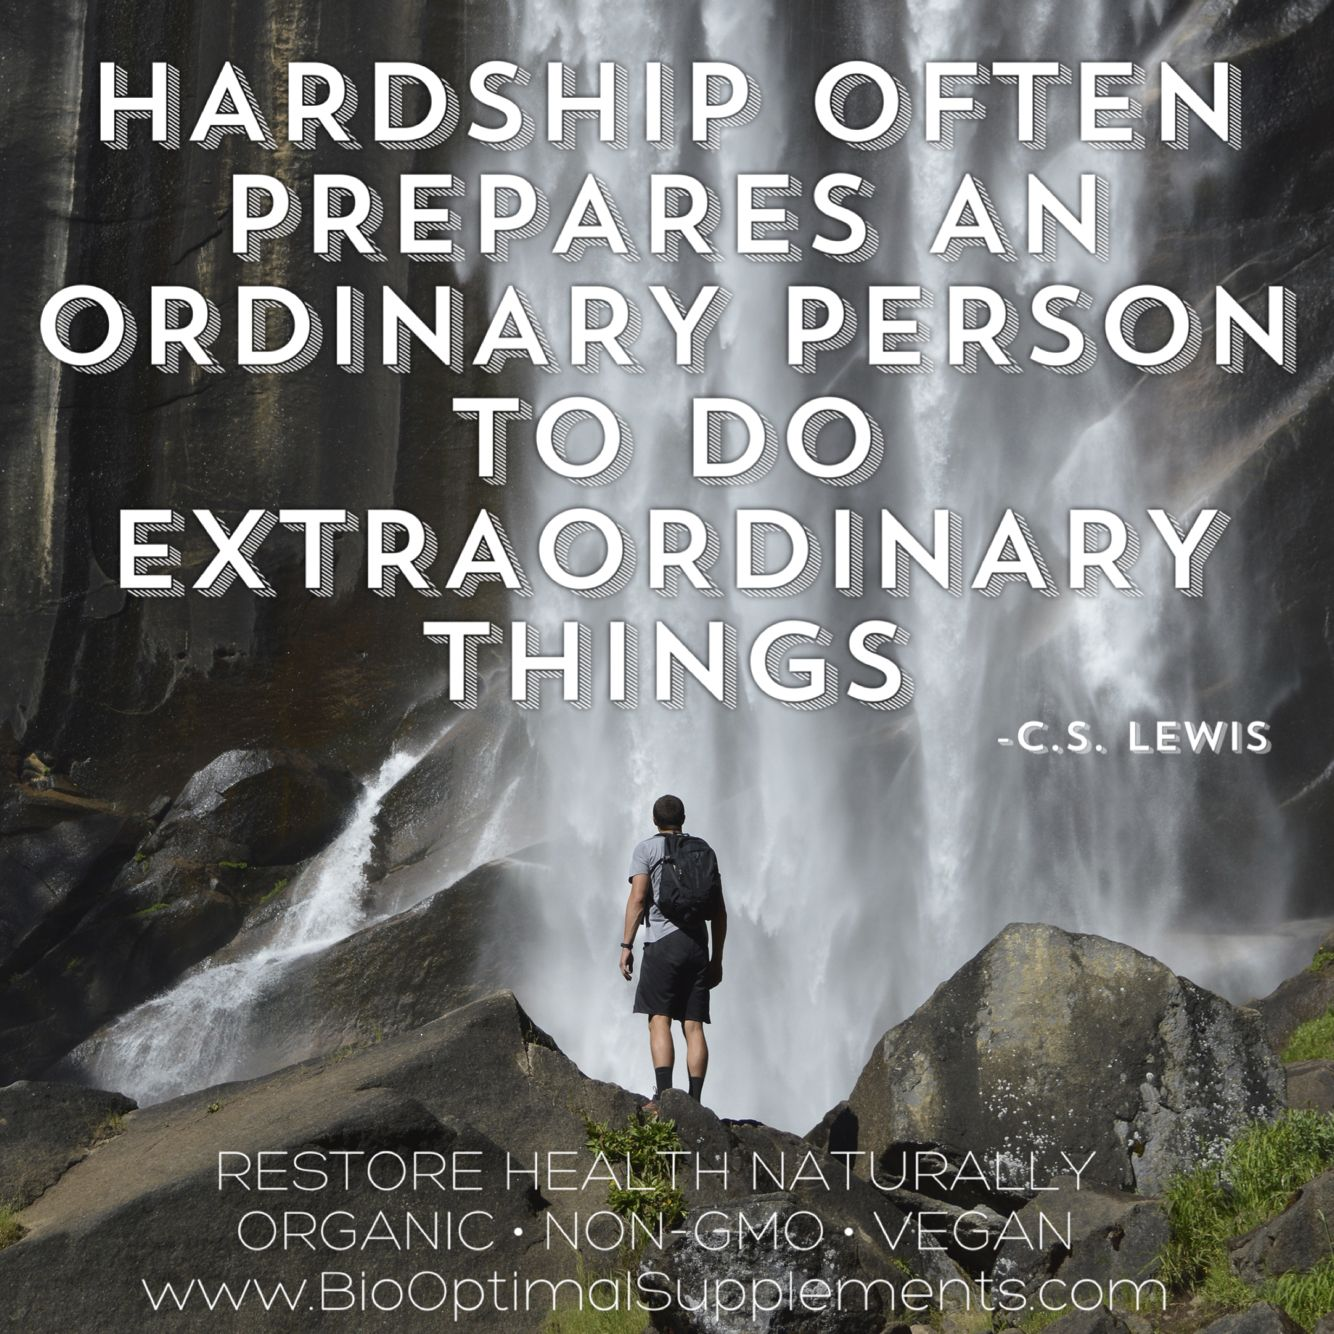 Hardship often prepares an ordinary person to do extraordinary things.  - C.S. Lewis